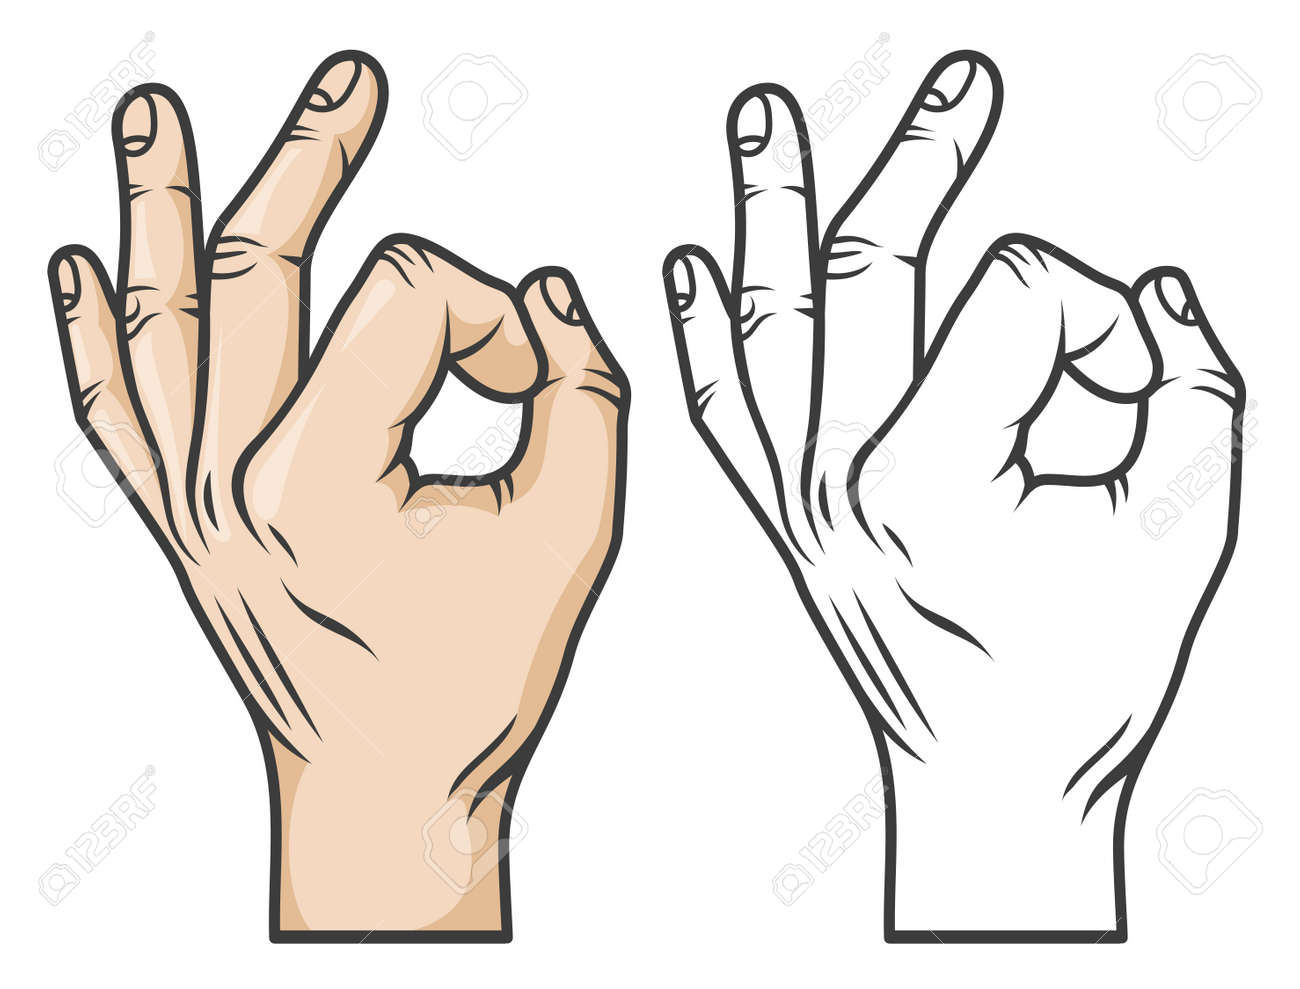 hand gesture ok or zero comics cartoon style black and white royalty free cliparts vectors and stock illustration image 70373745 123rf com